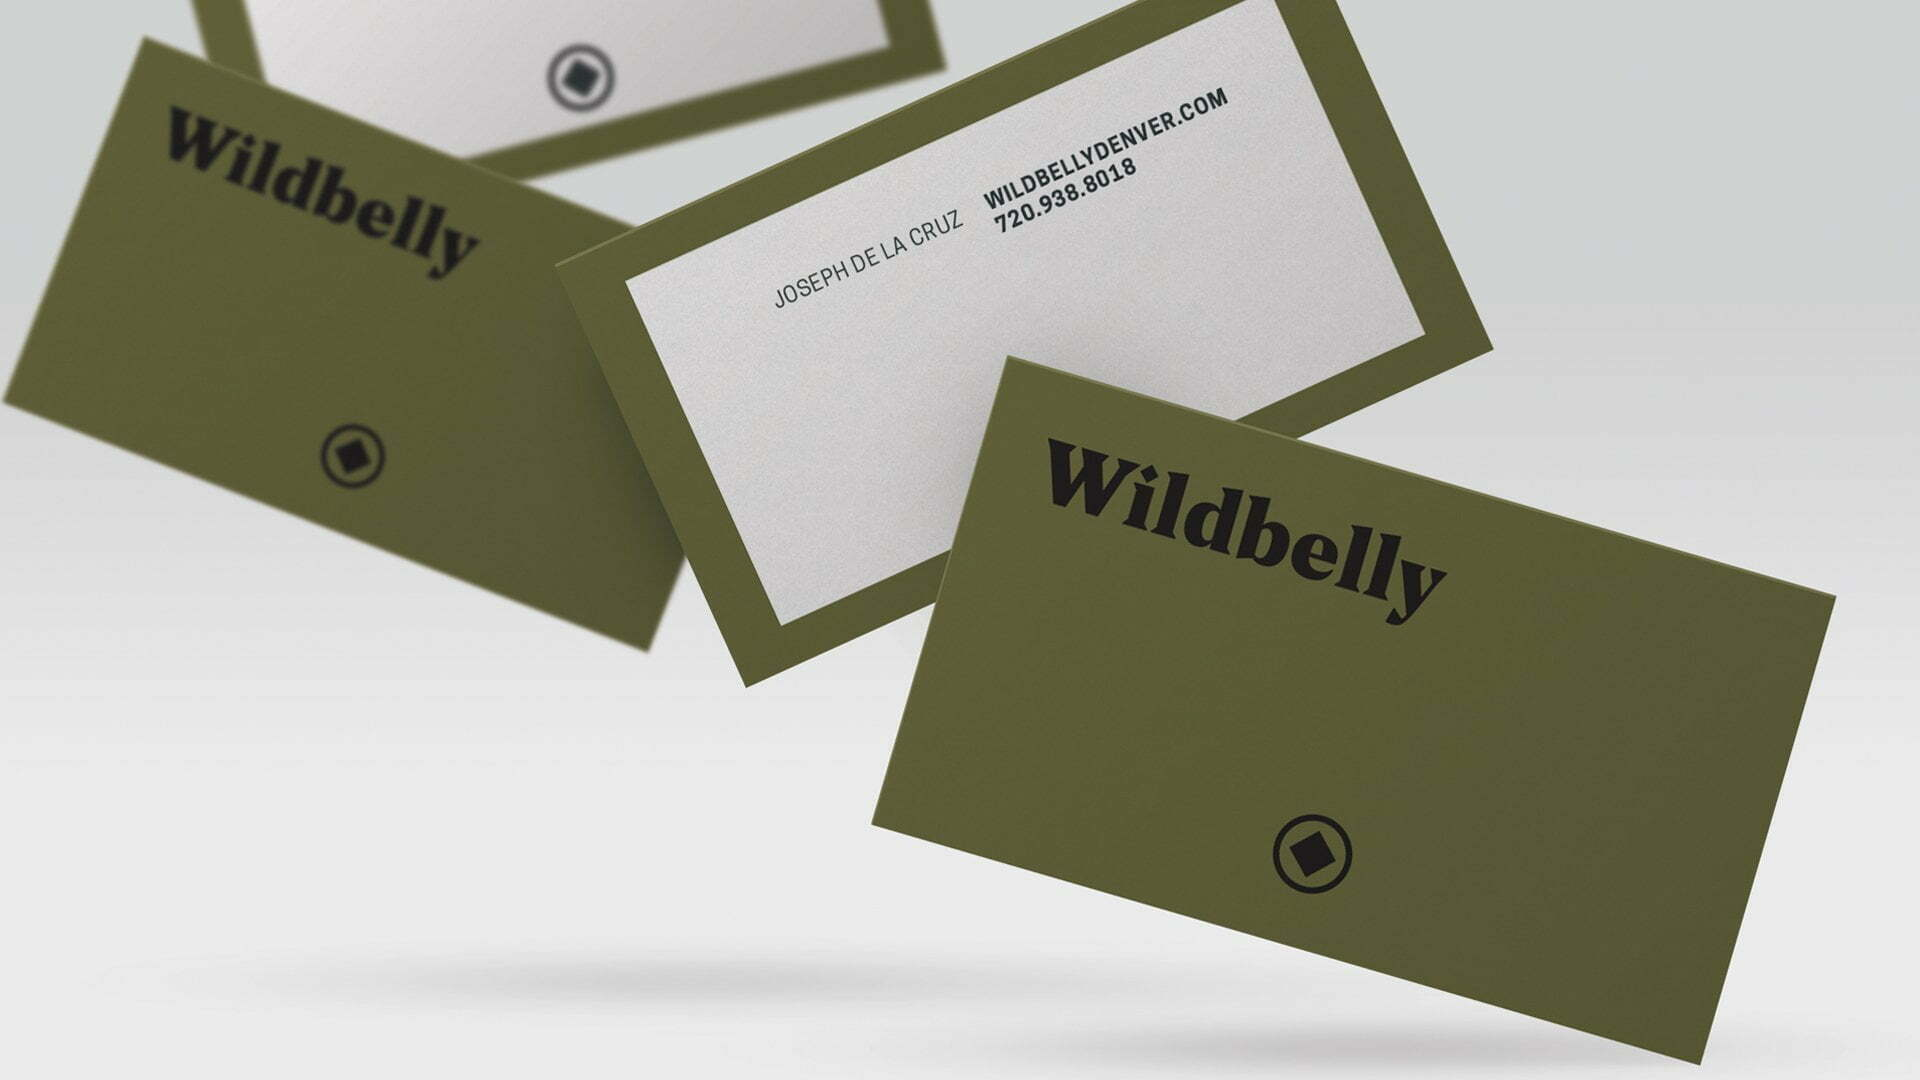 Wildbelly Business-Cards_Green